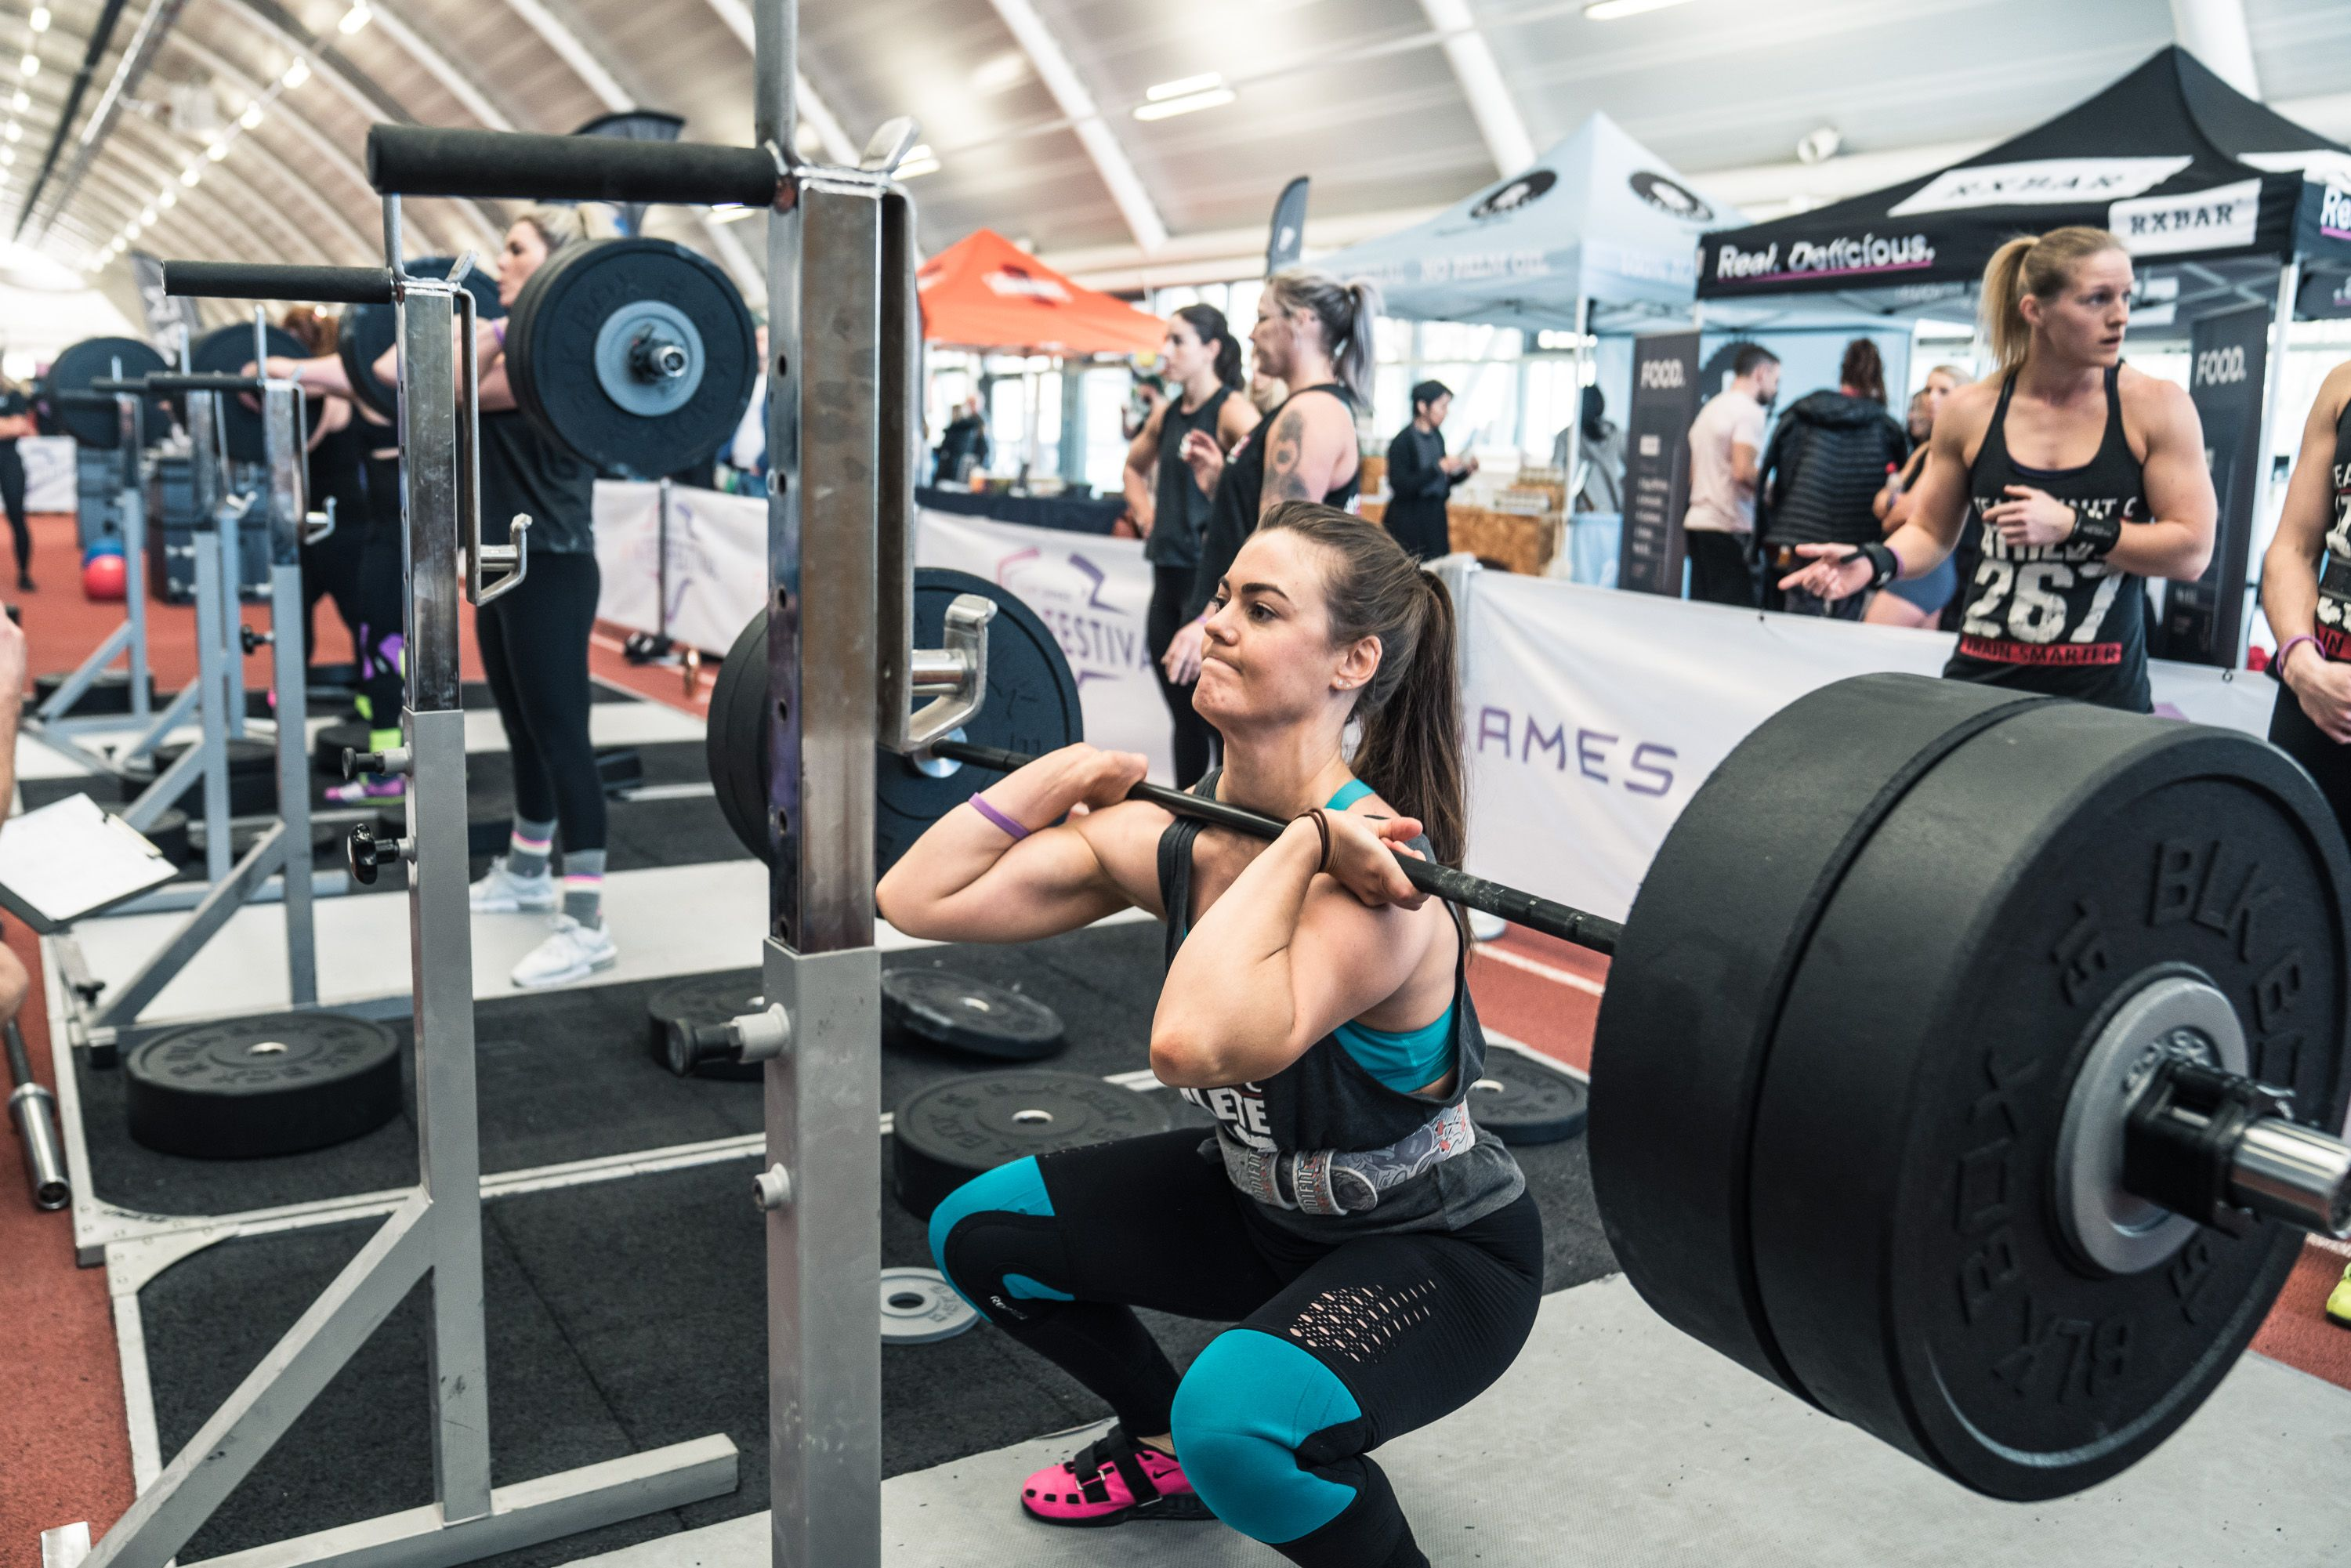 Turf Games Fittest Women Share the Fitness and Food that Got them a Win